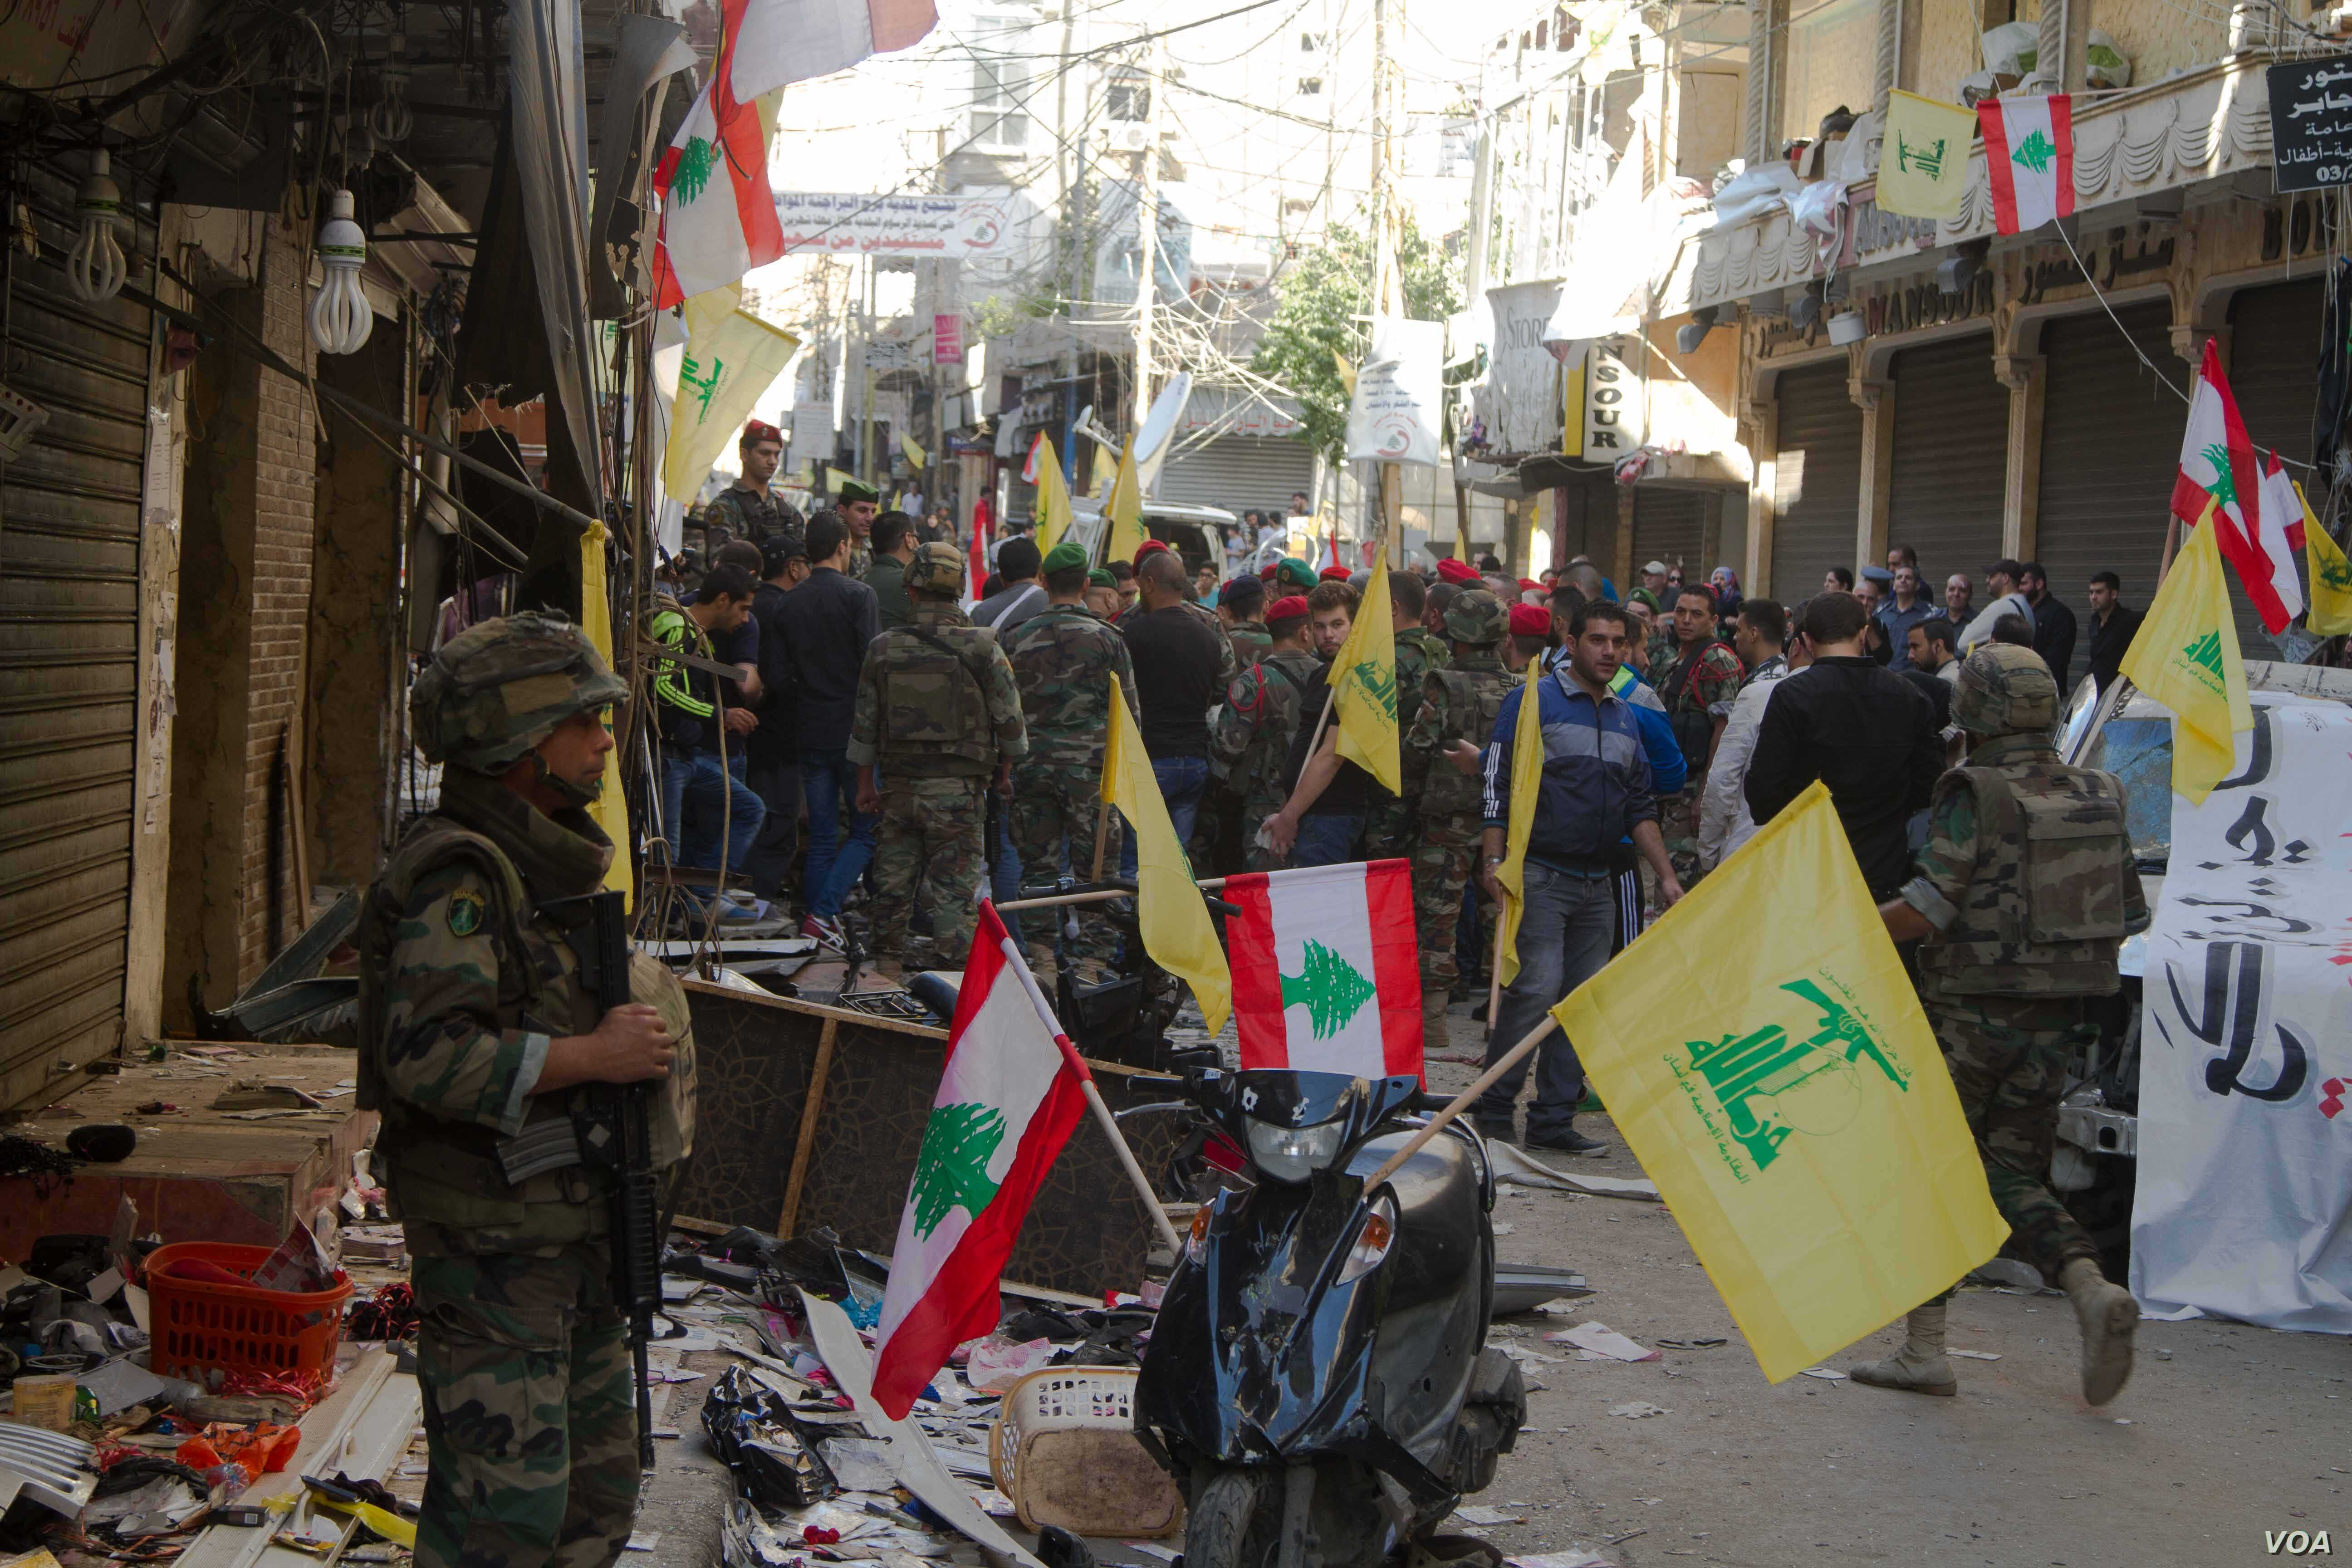 The bombs went off in Burj al-Barajneh, a predominantly Shi'ite suburb of southern Beirut.